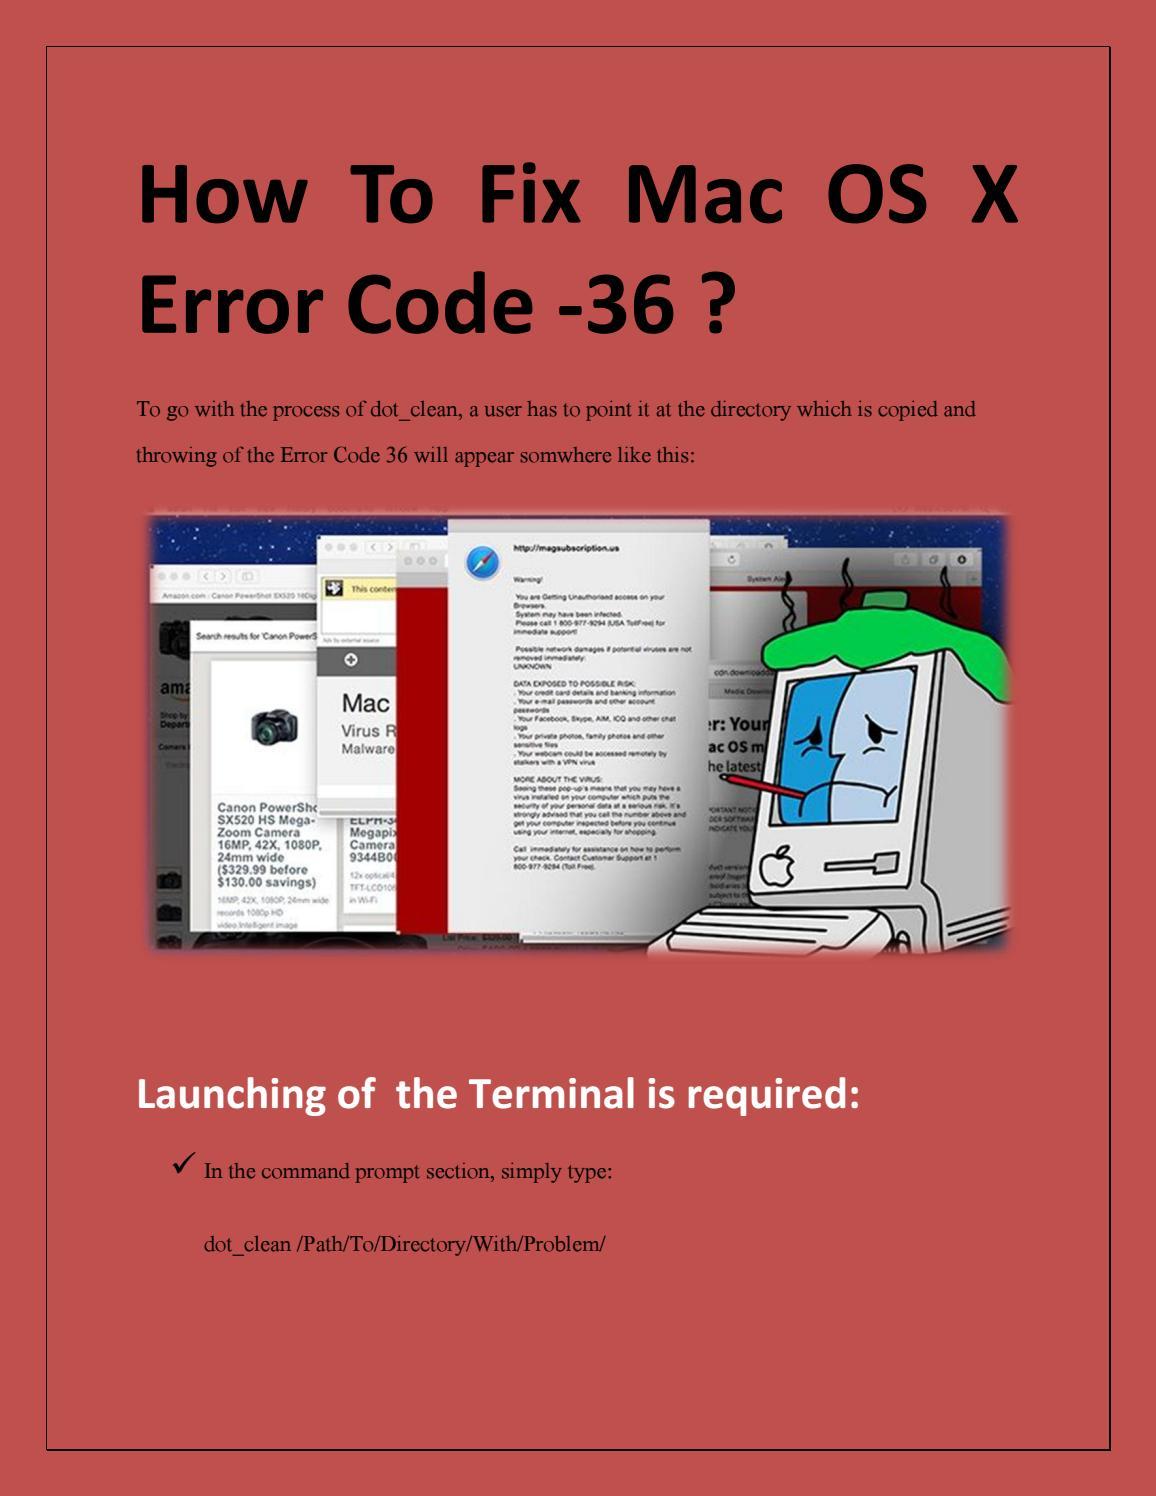 How to fix Mac OS X Error Code -36 ? by alexisblackwell - issuu